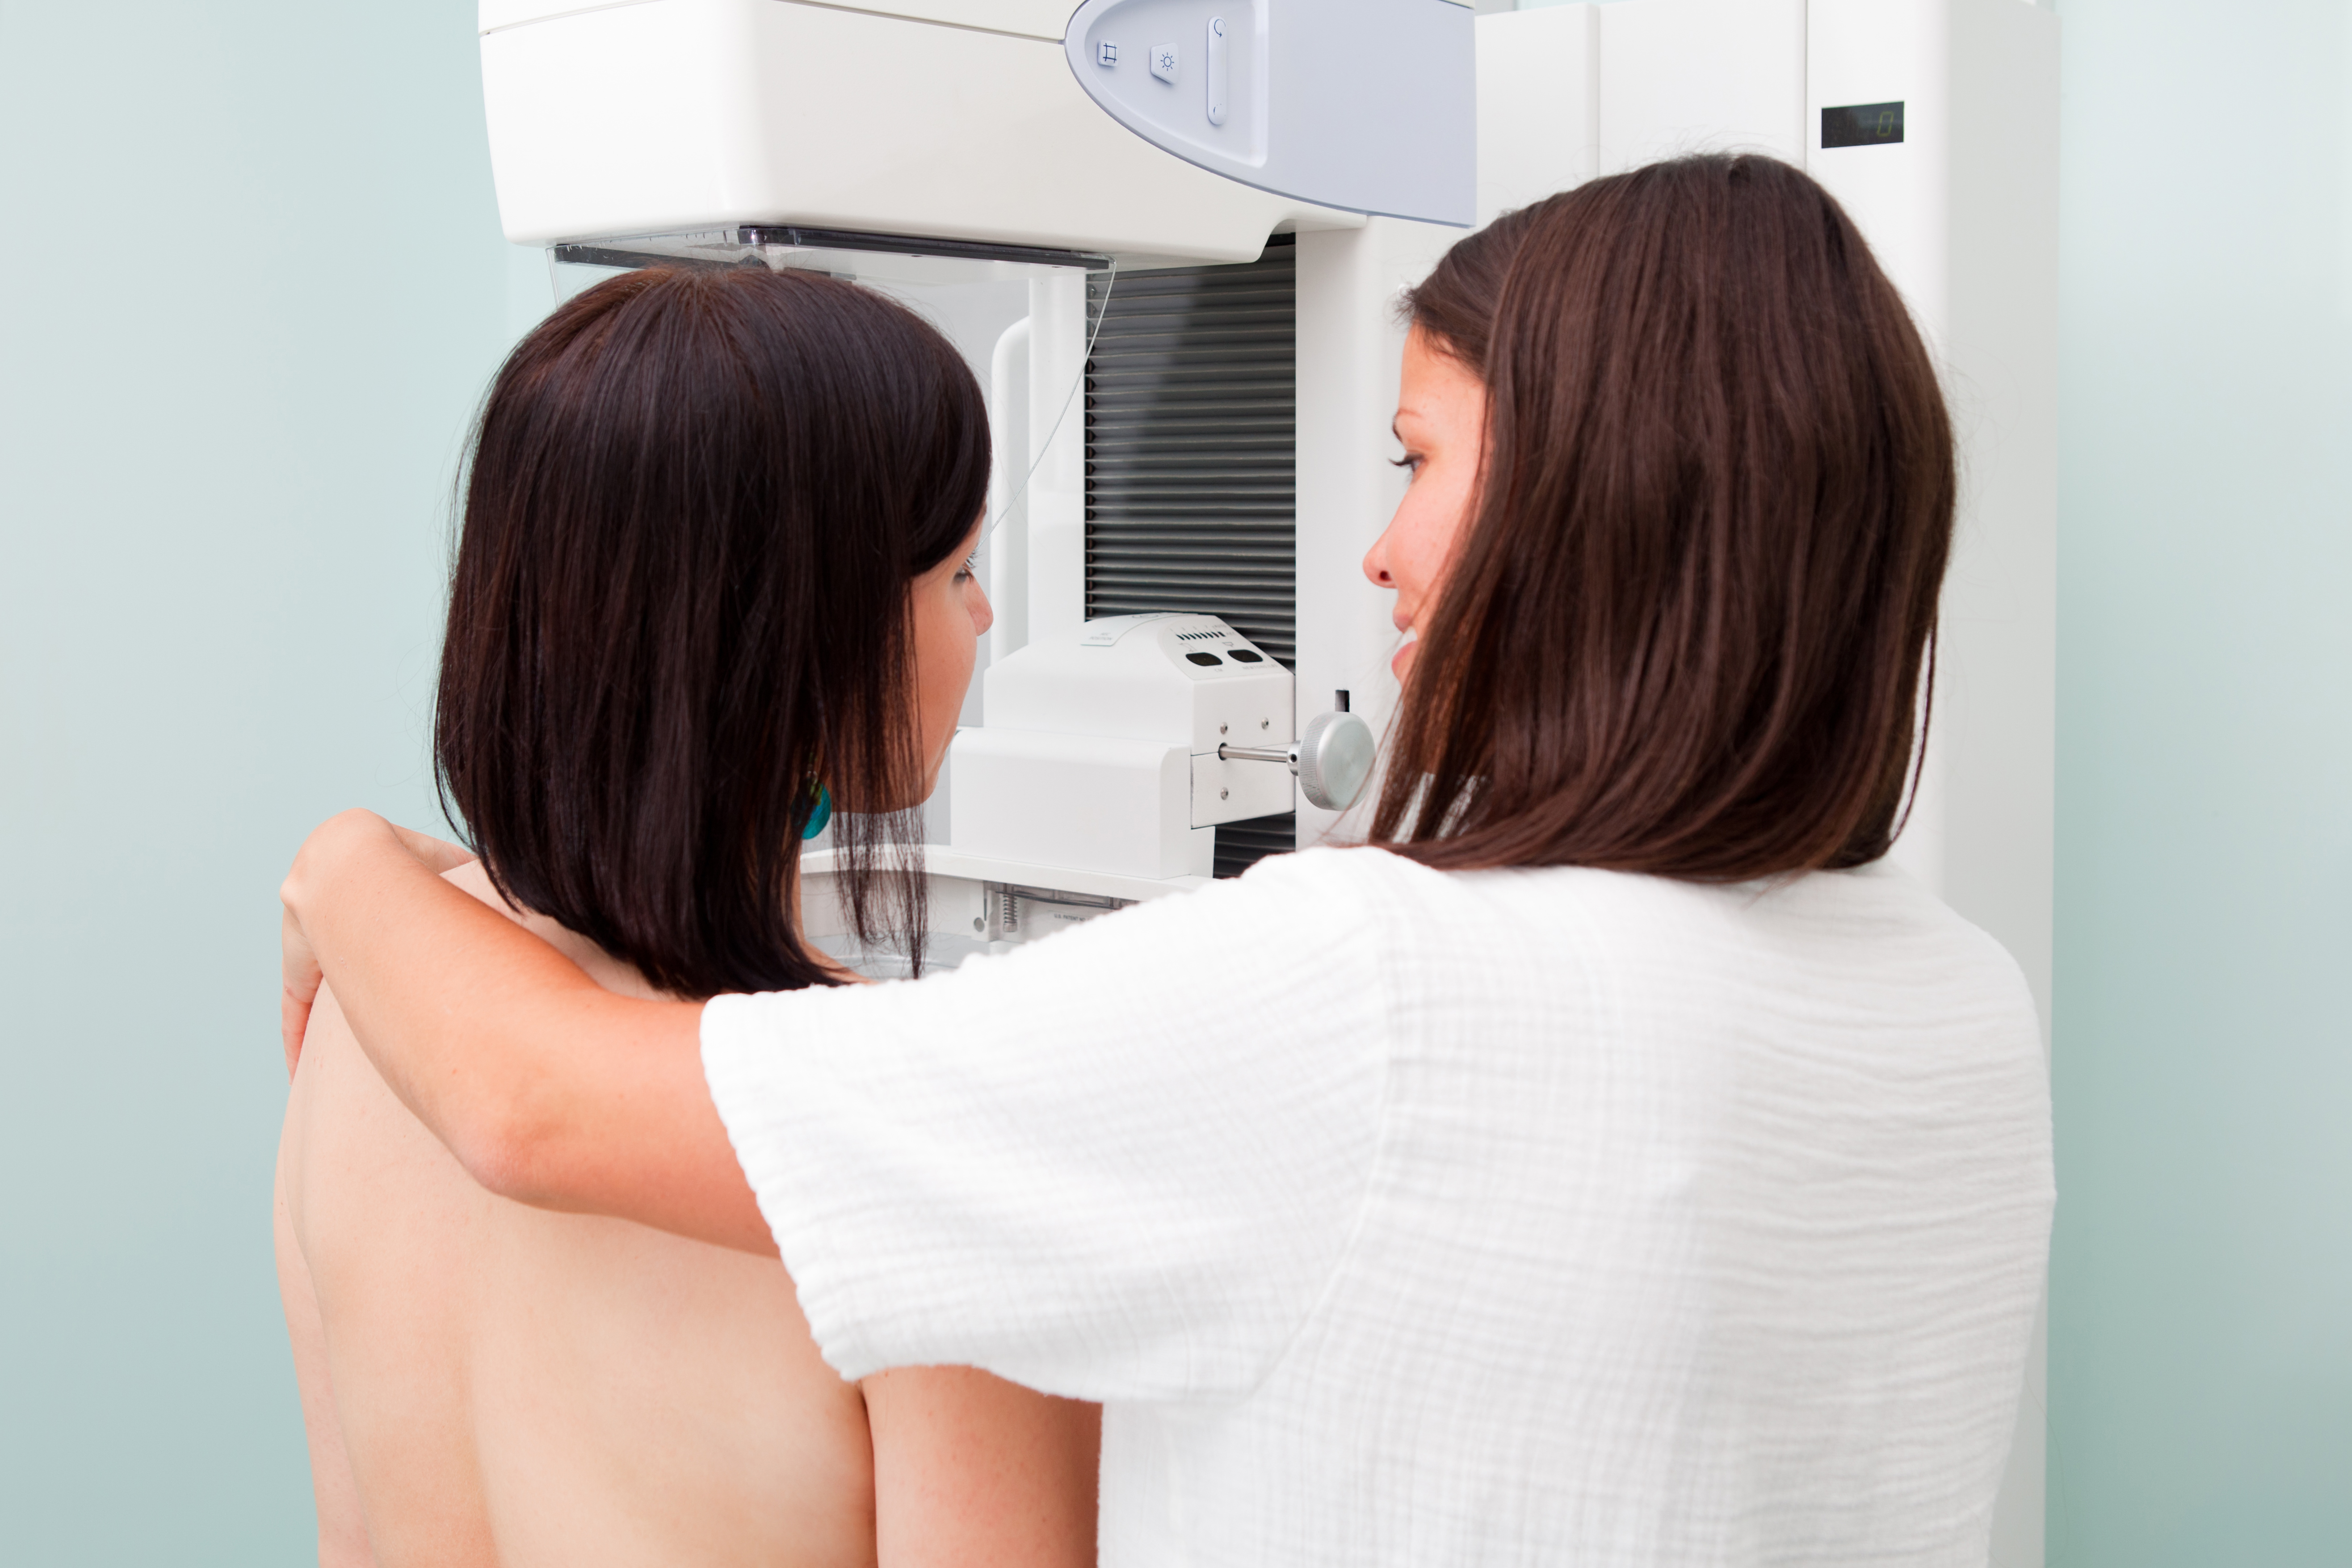 Nurse with patient having a mammogram.